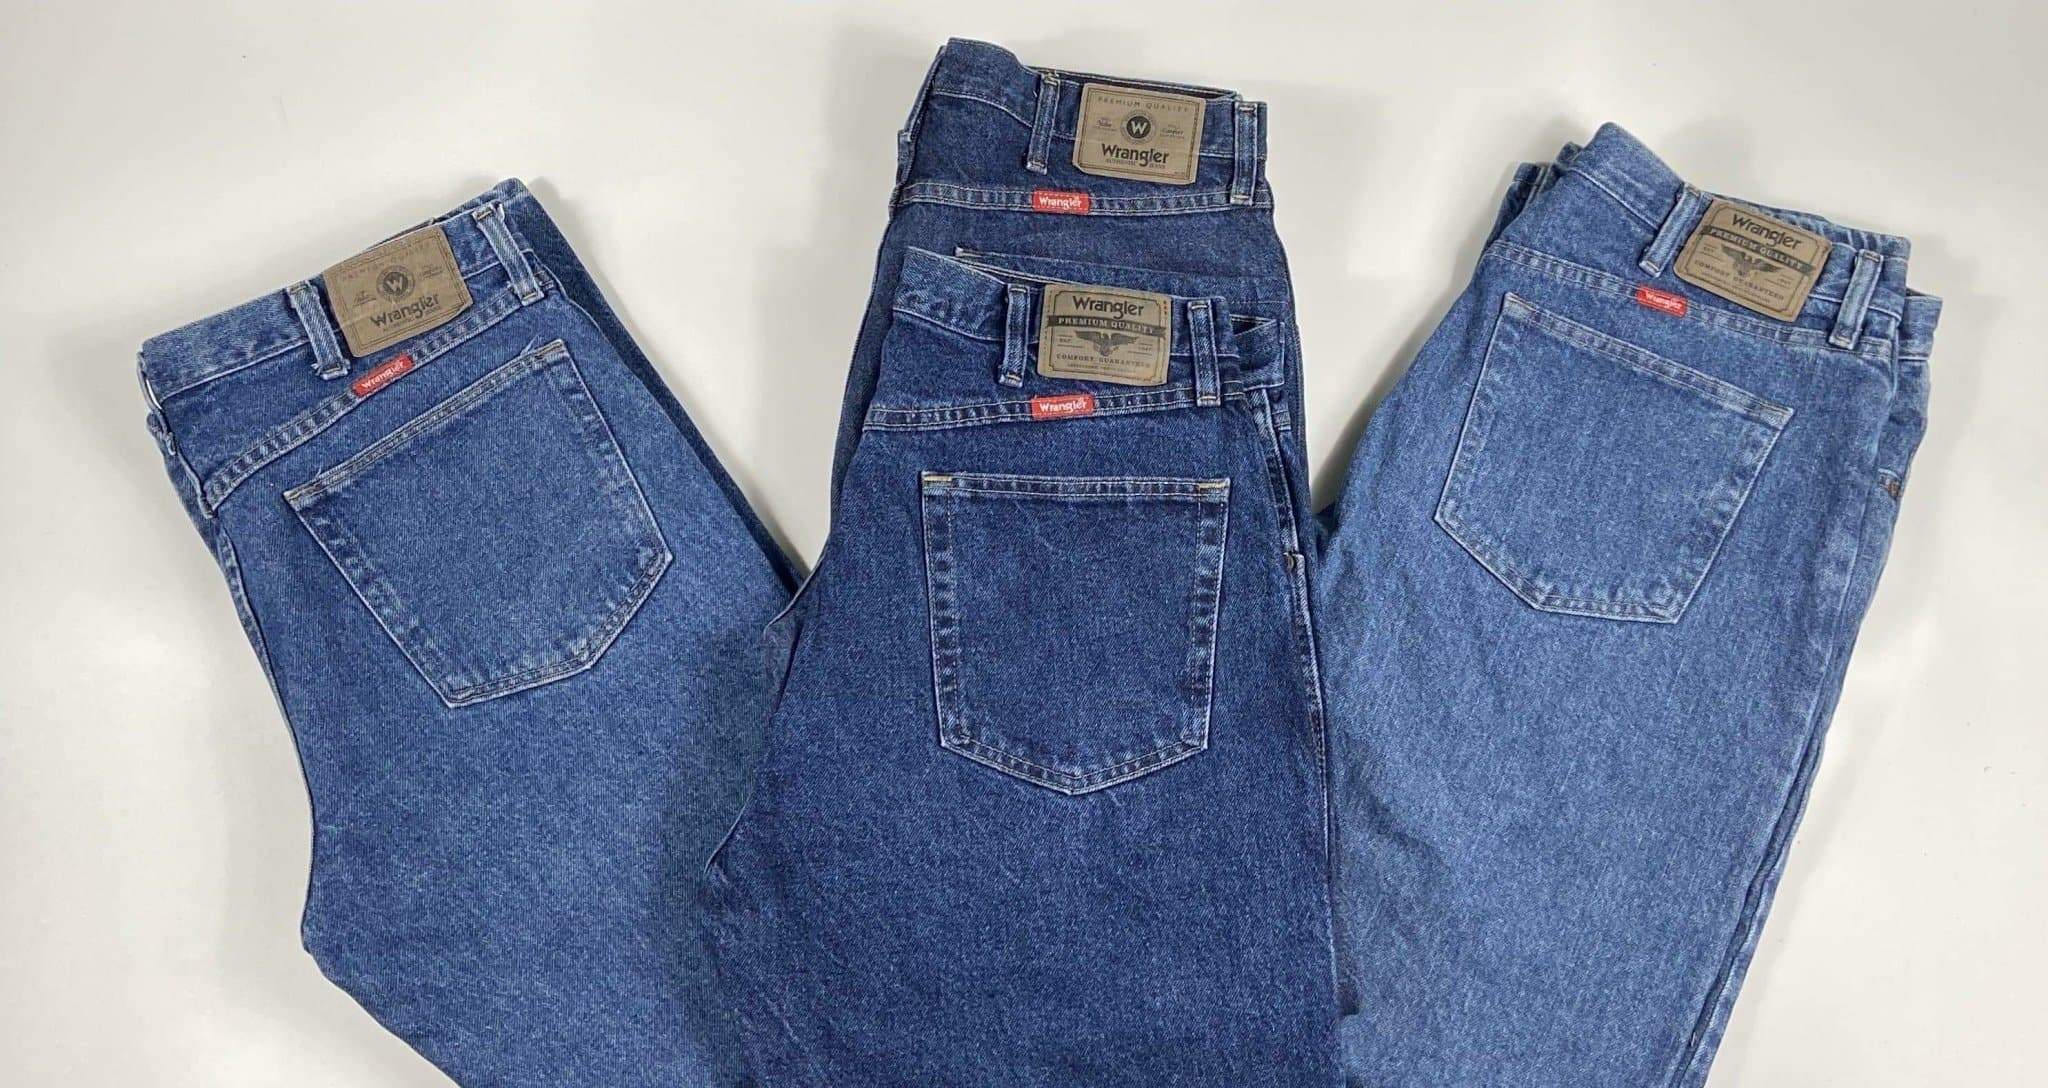 Vintage Original Wrangler Classic Blue Denim Jeans Waist 38 Length 29 - Discounted Deals UK